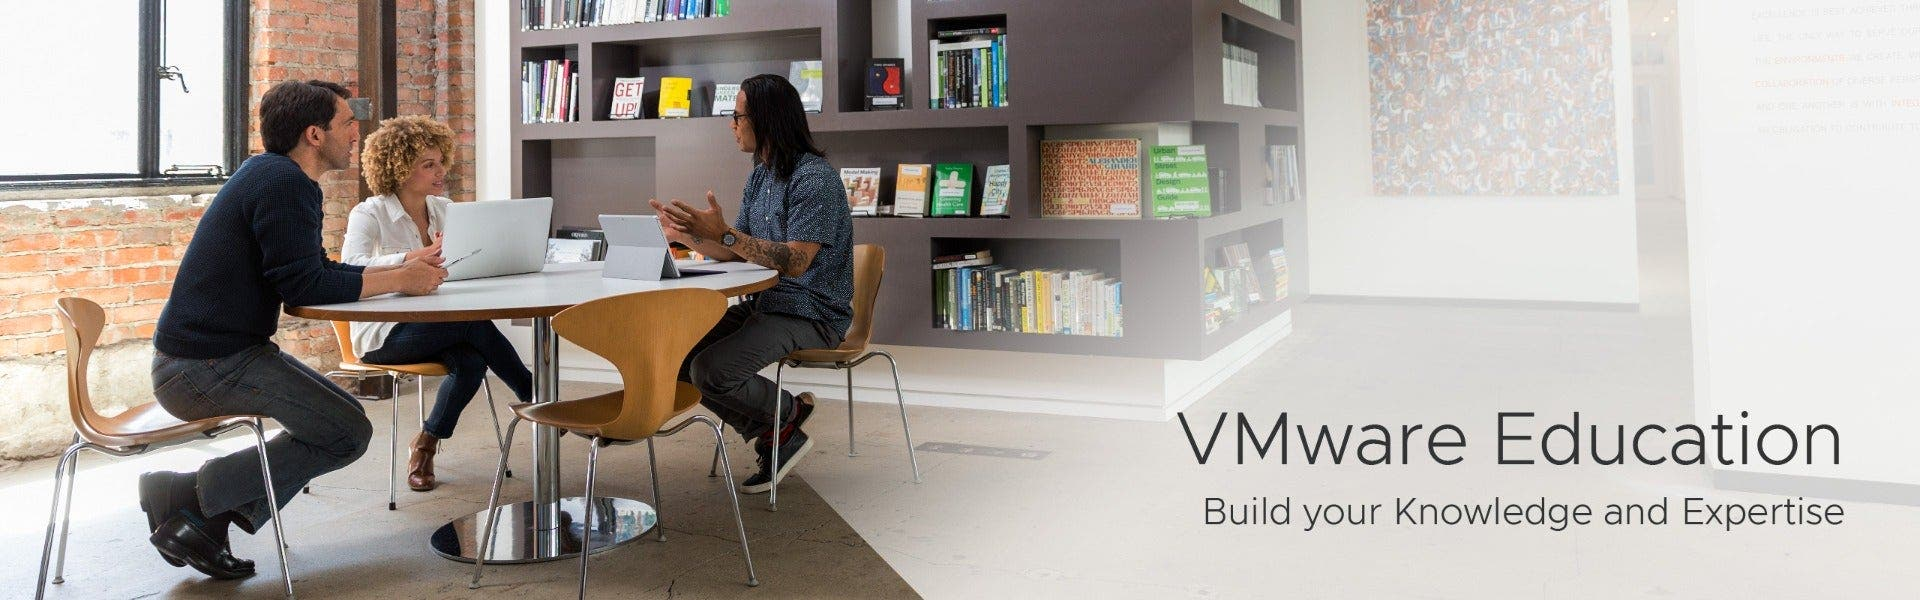 VMware Education. Build your Knowledge and Expertise